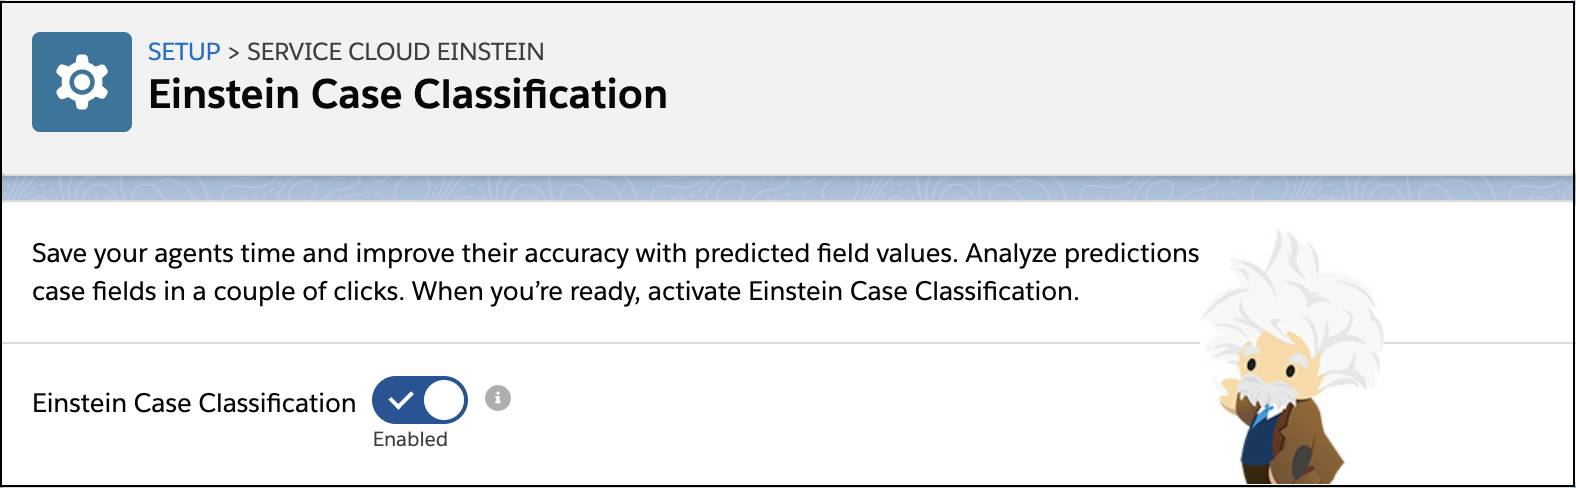 Einstein Case Classification Setup page with feature enabled